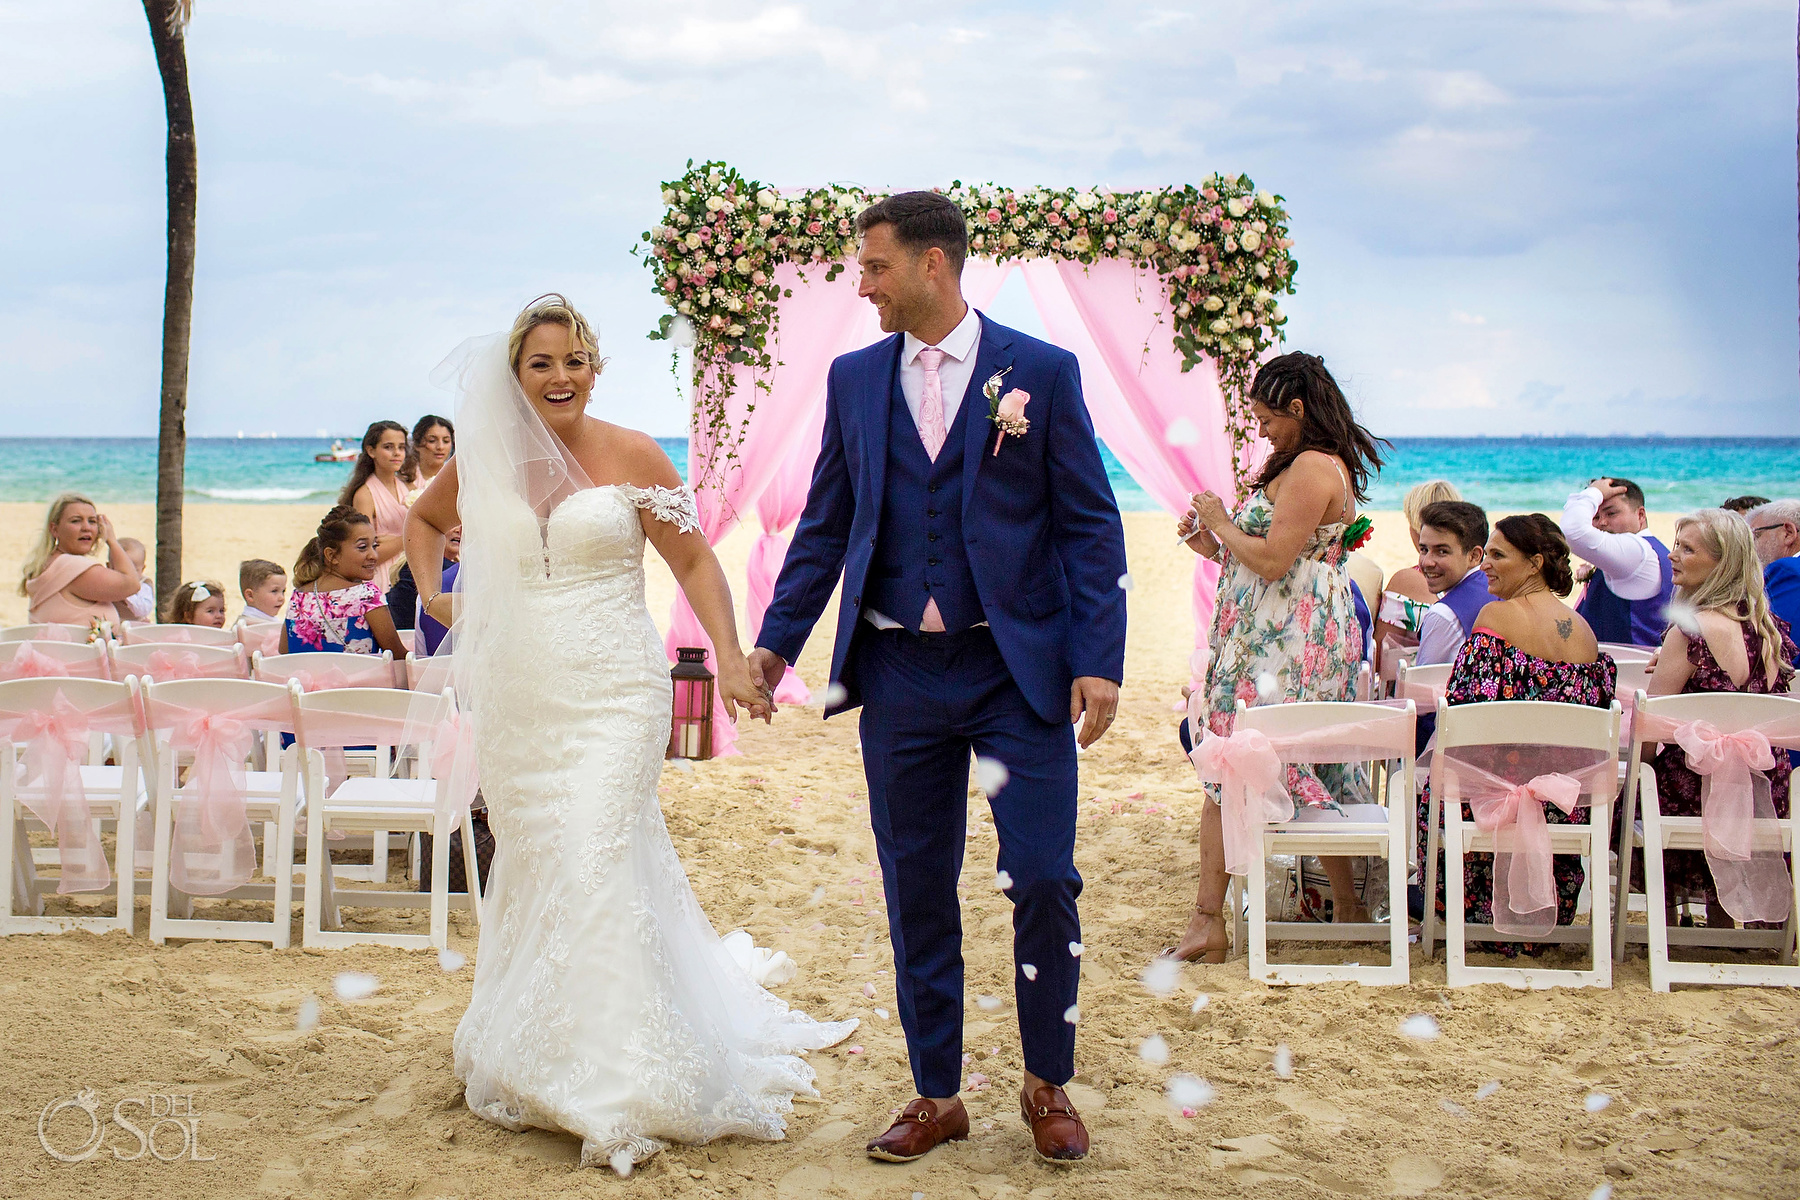 Bride and Groom roses petals confetti Riu Palace Mexico Beach